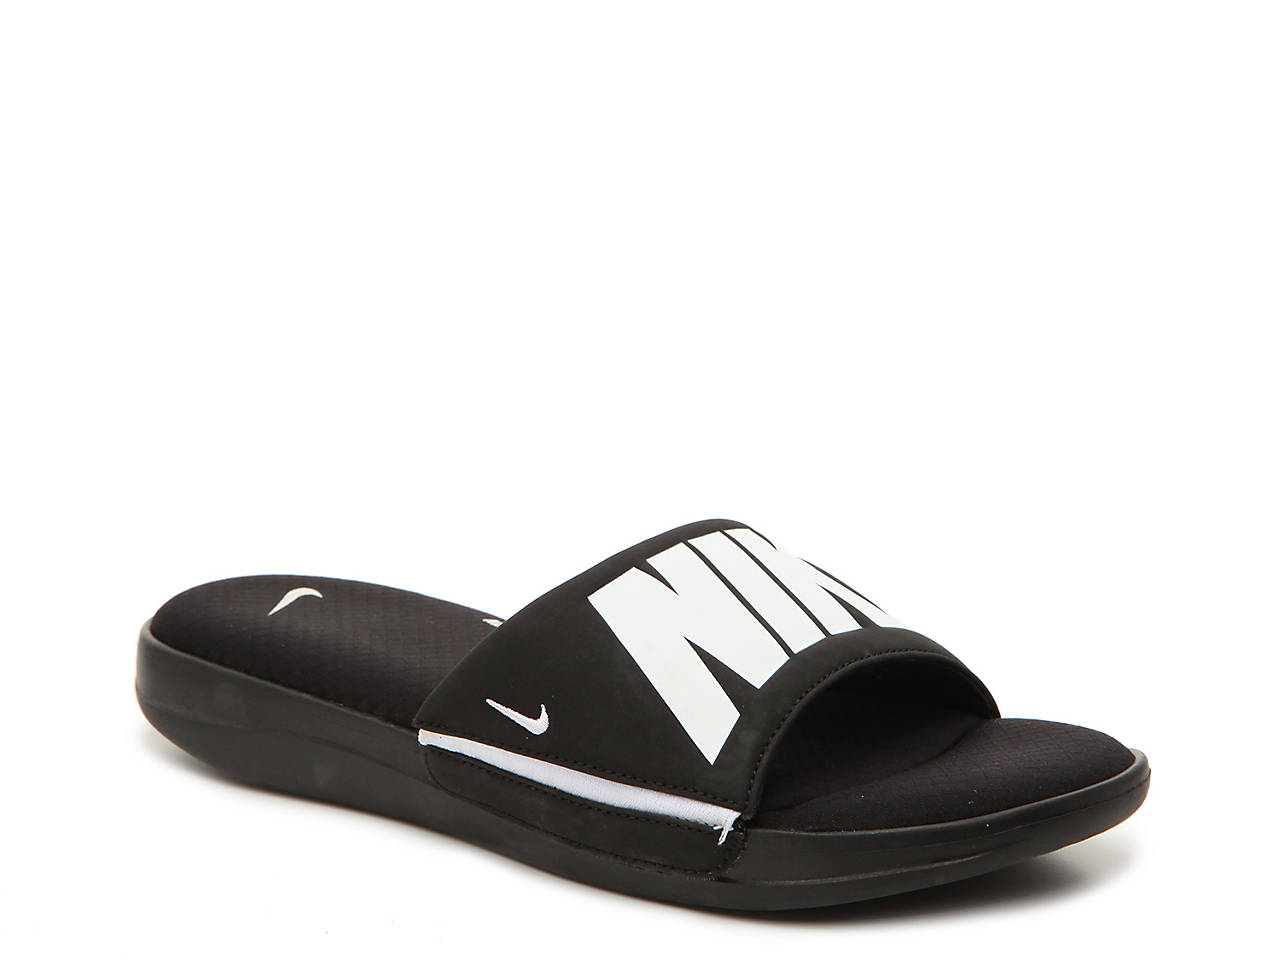 a87558bcb Nike Ultra Comfort 3 Slide Sandal - Men s Men s Shoes